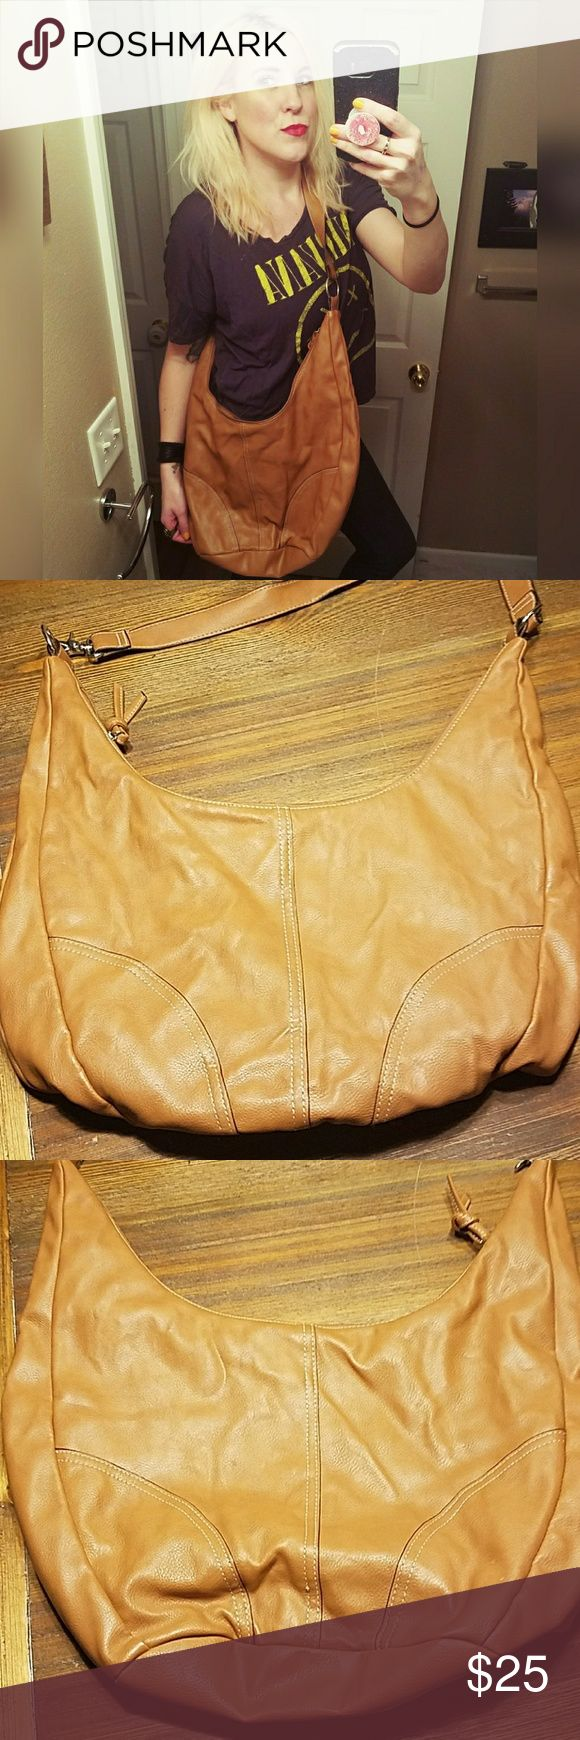 """Super cool, OLD NAVY, faux leather, slouchy bag! Looks great dressed up or down. Zipper closure. Some staining on lining. Tiny spot on one side. Haven't tried to clean. 17.5"""" wide. 11"""" tall (at middle). 20"""" handle drop. Old Navy Bags"""